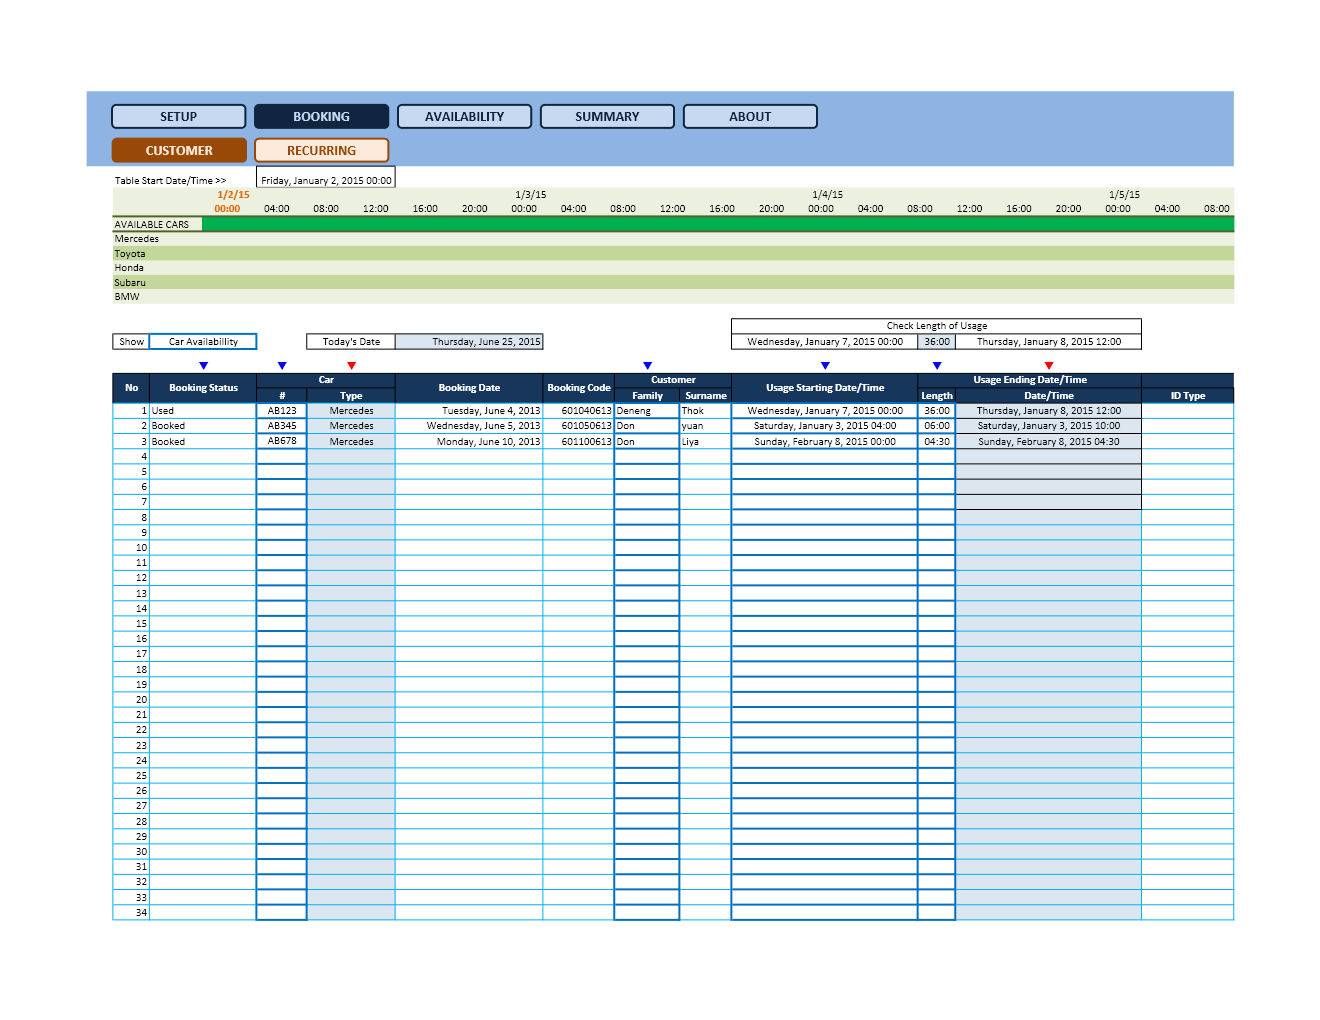 Hotel Inventory Spreadsheet